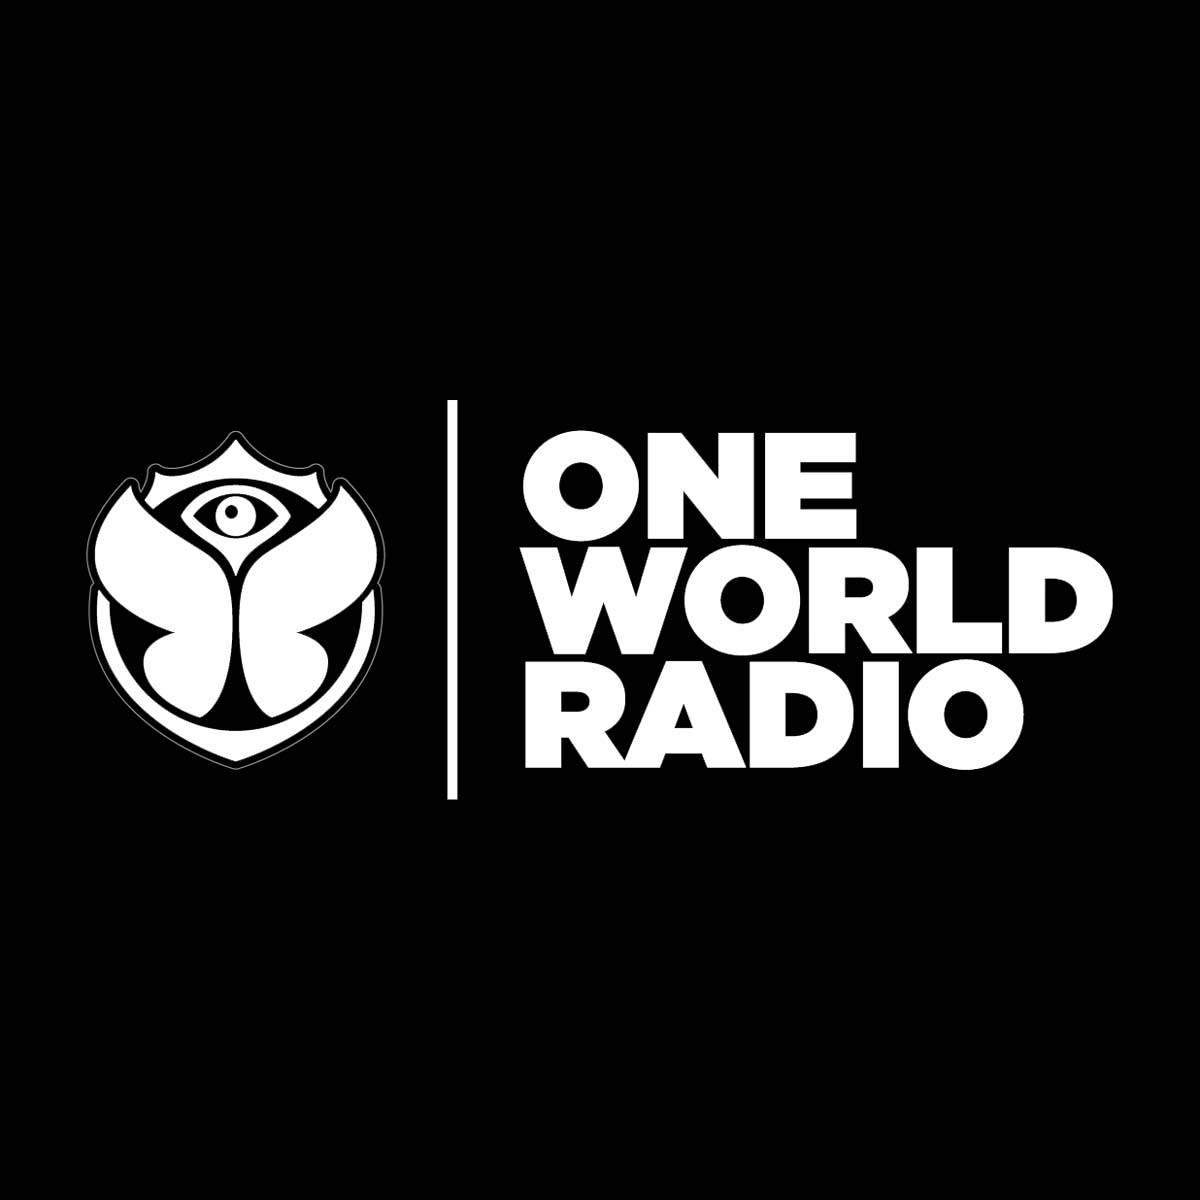 Enjoy Drumcode's Special on Tomorrowland's One World Radio